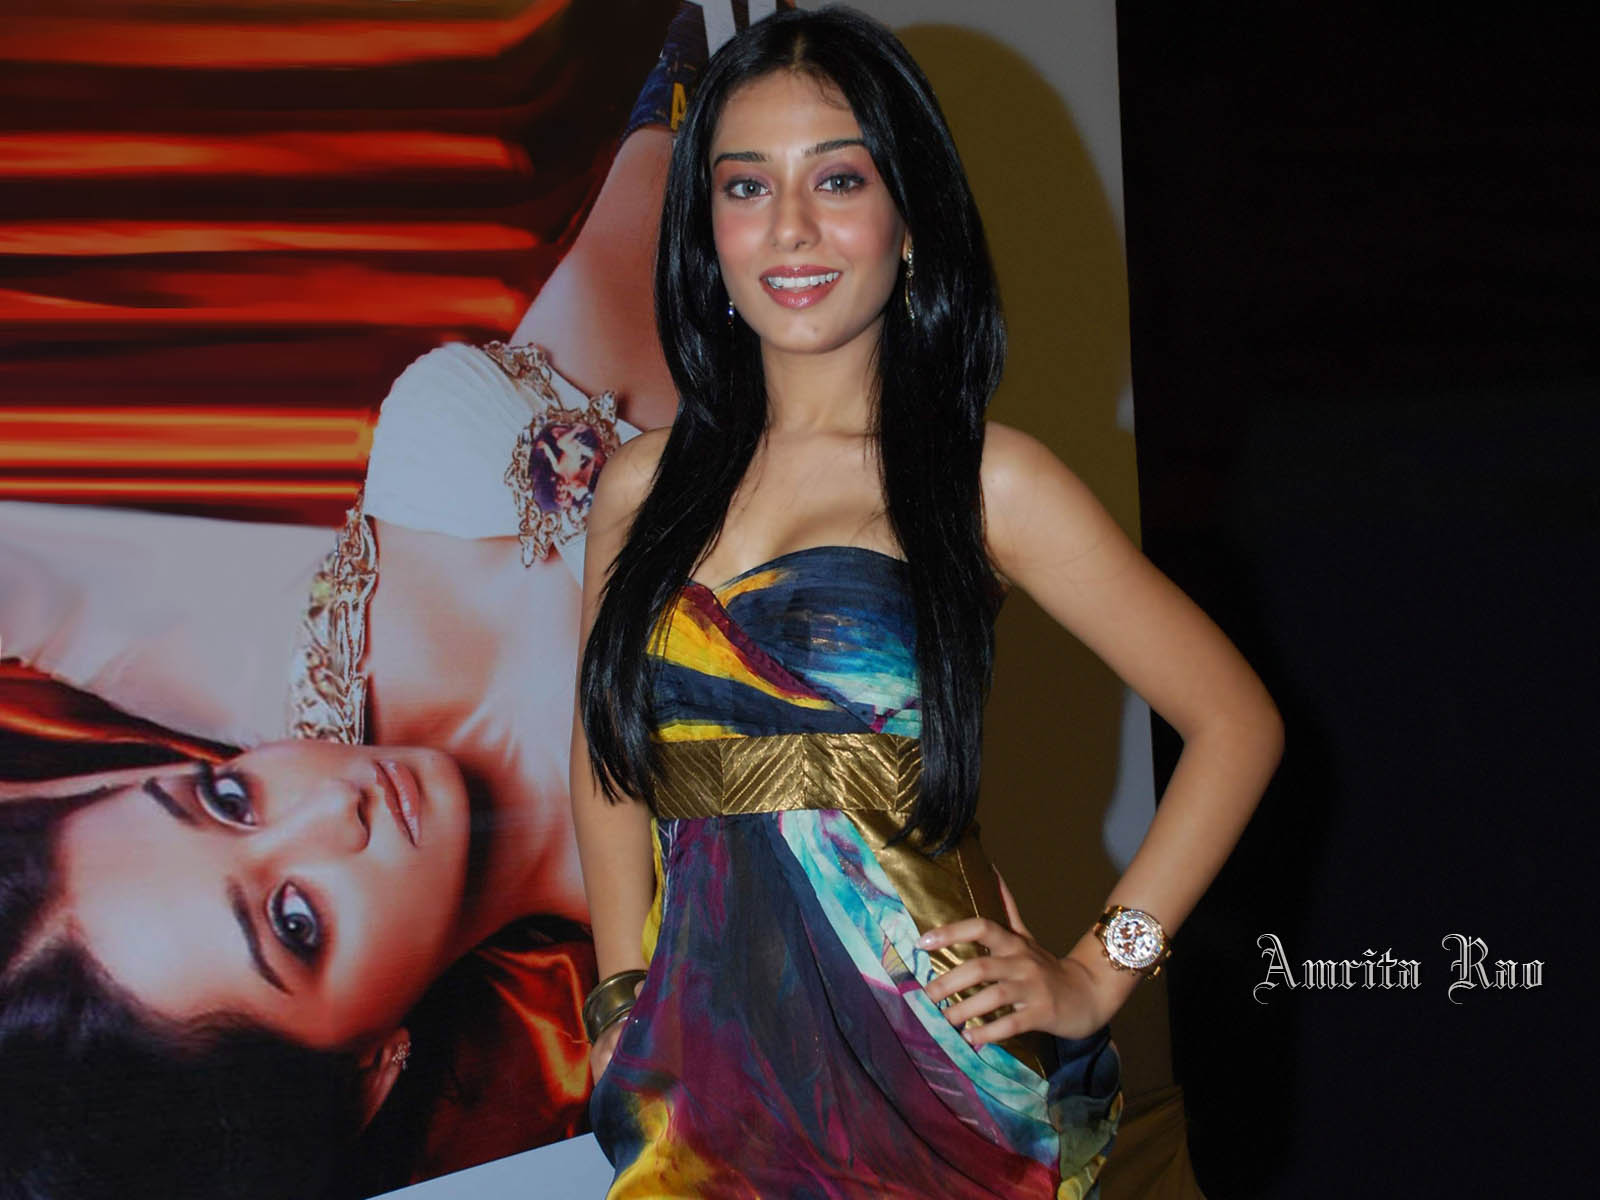 amrita-rao-high-resolution-hot-wallpapers-2 – best download 2